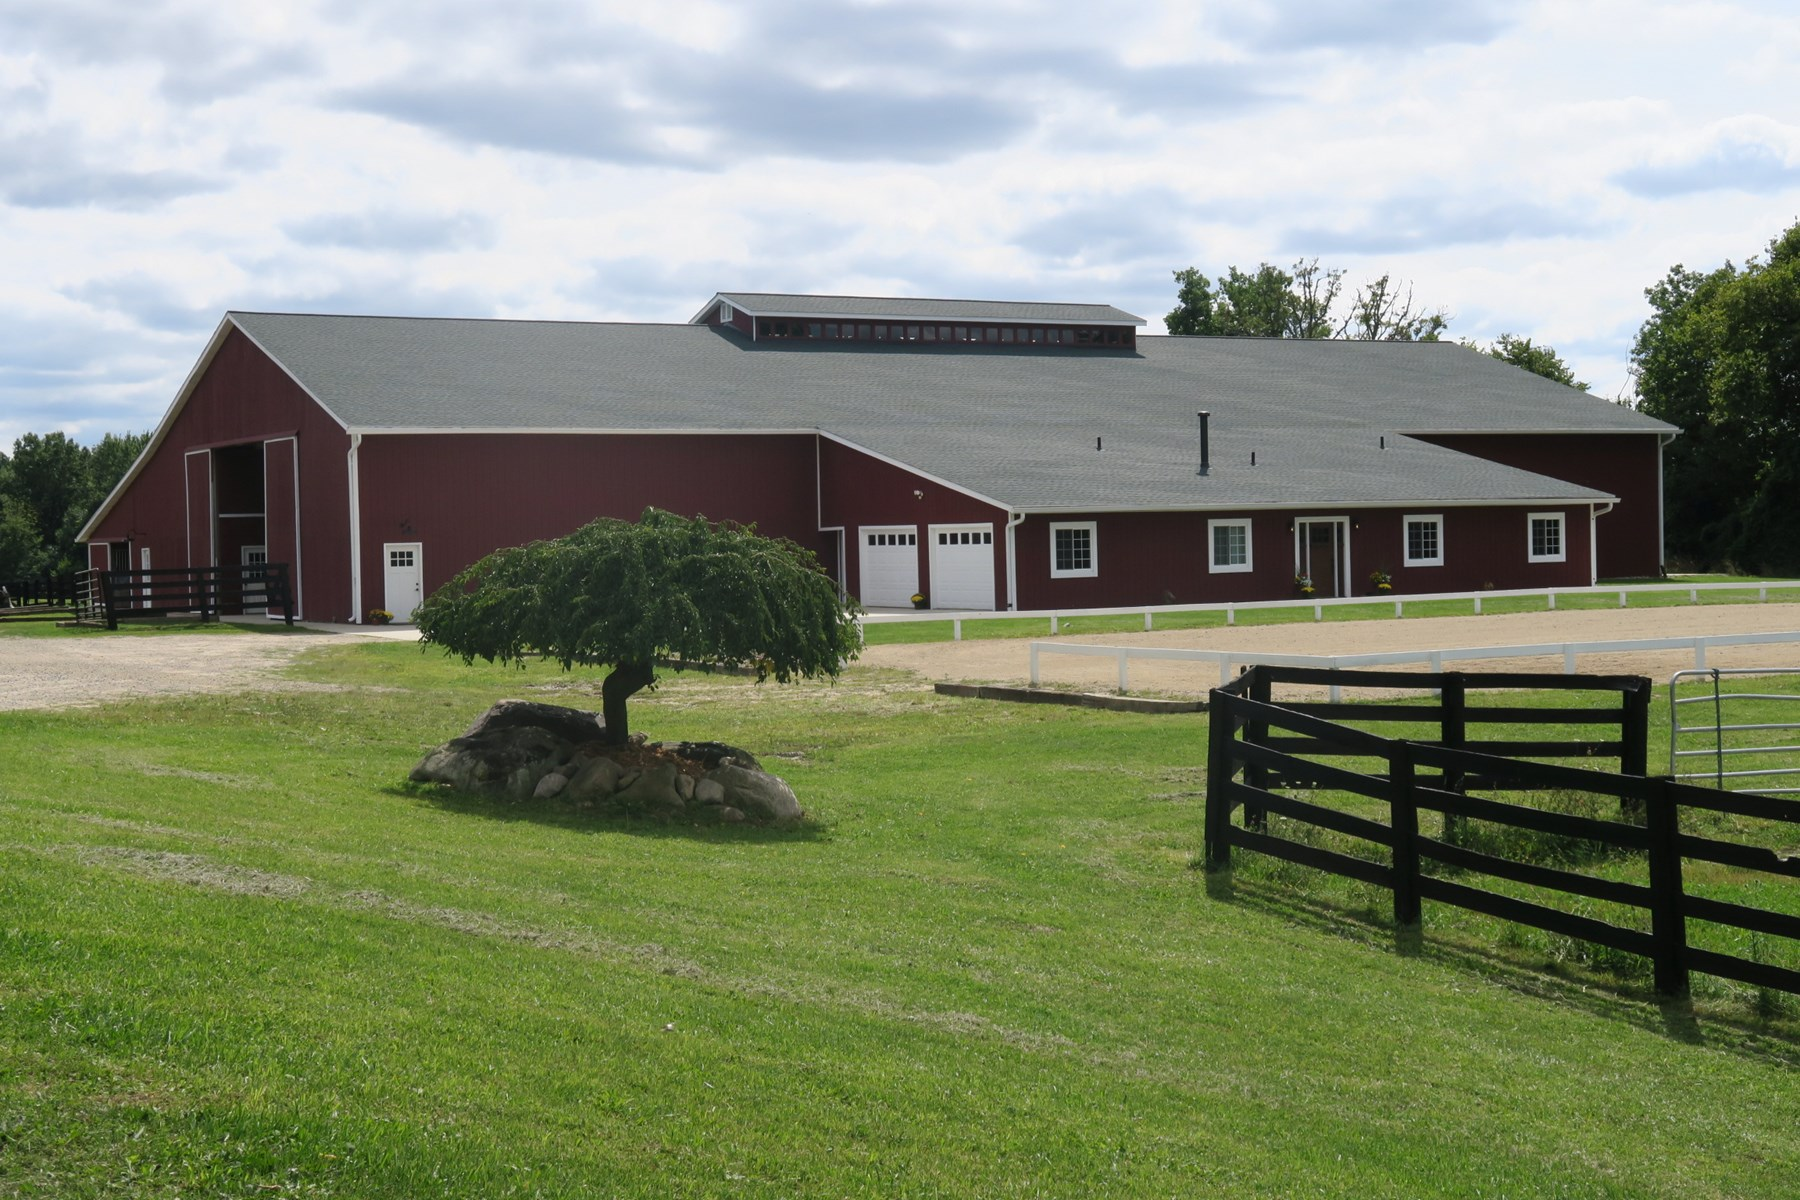 Turn-Key Equestrian Facility For Sale in Lapeer County, MI